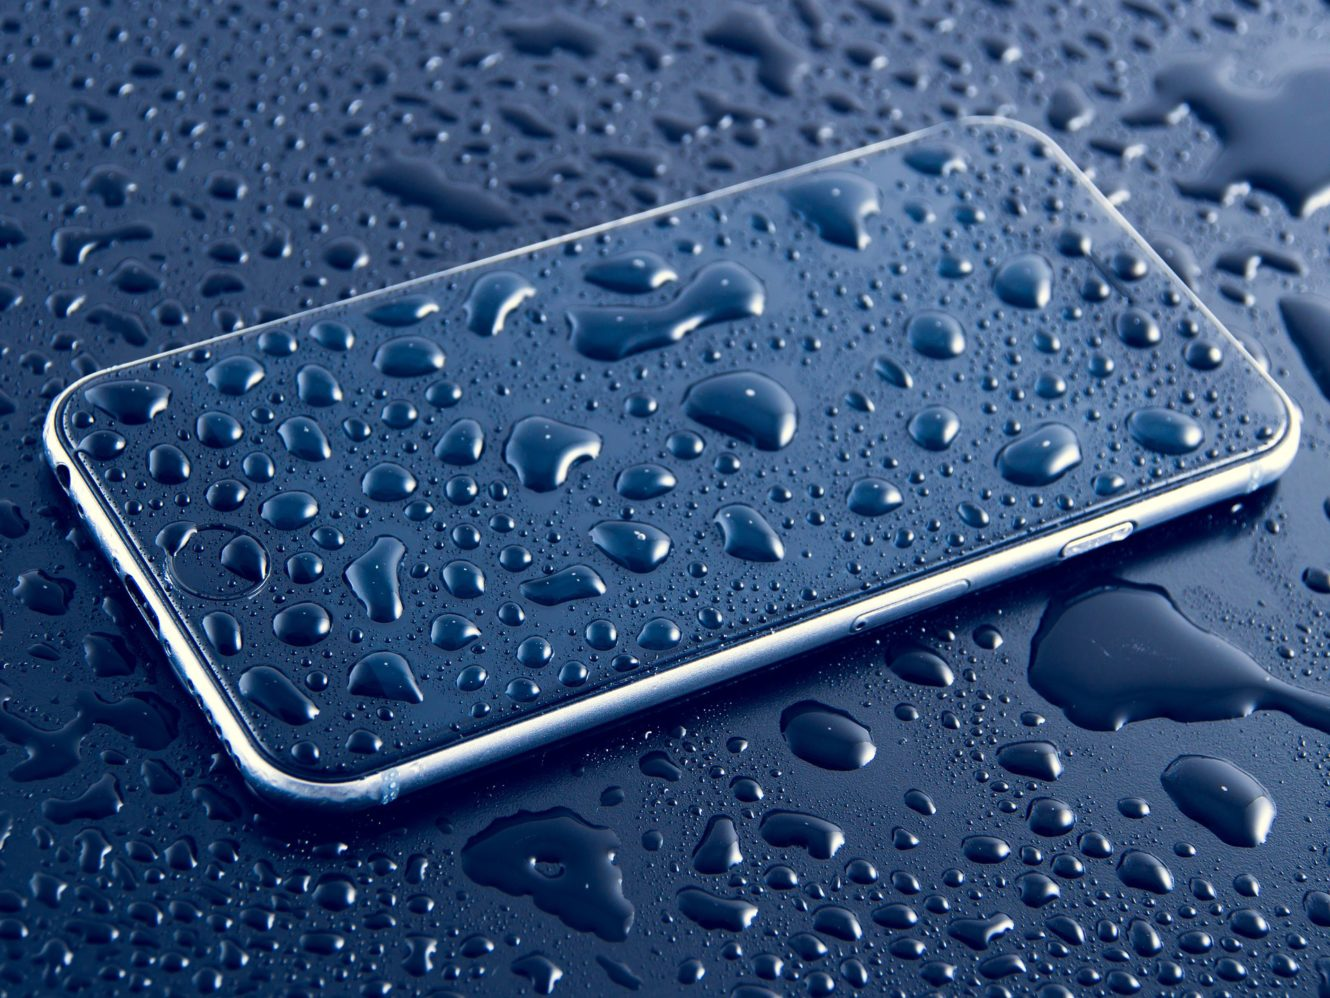 iPhone in rain